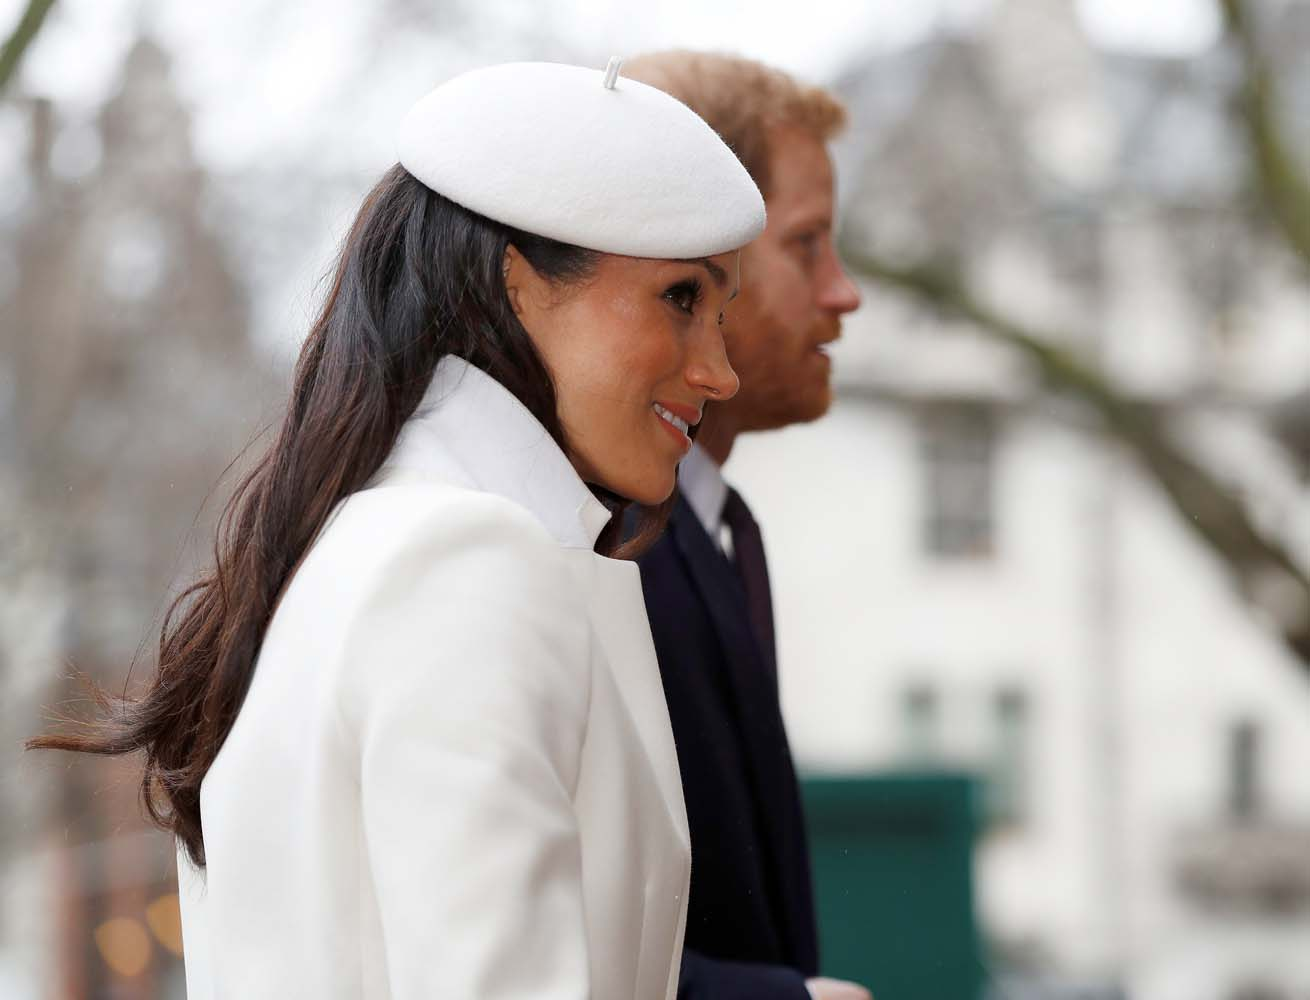 Britain's Prince Harry and his fiancee Meghan Markle arrive at the Commonwealth Service at Westminster Abbey in London, Britain, March 12, 2018. REUTERS/Peter Nicholls